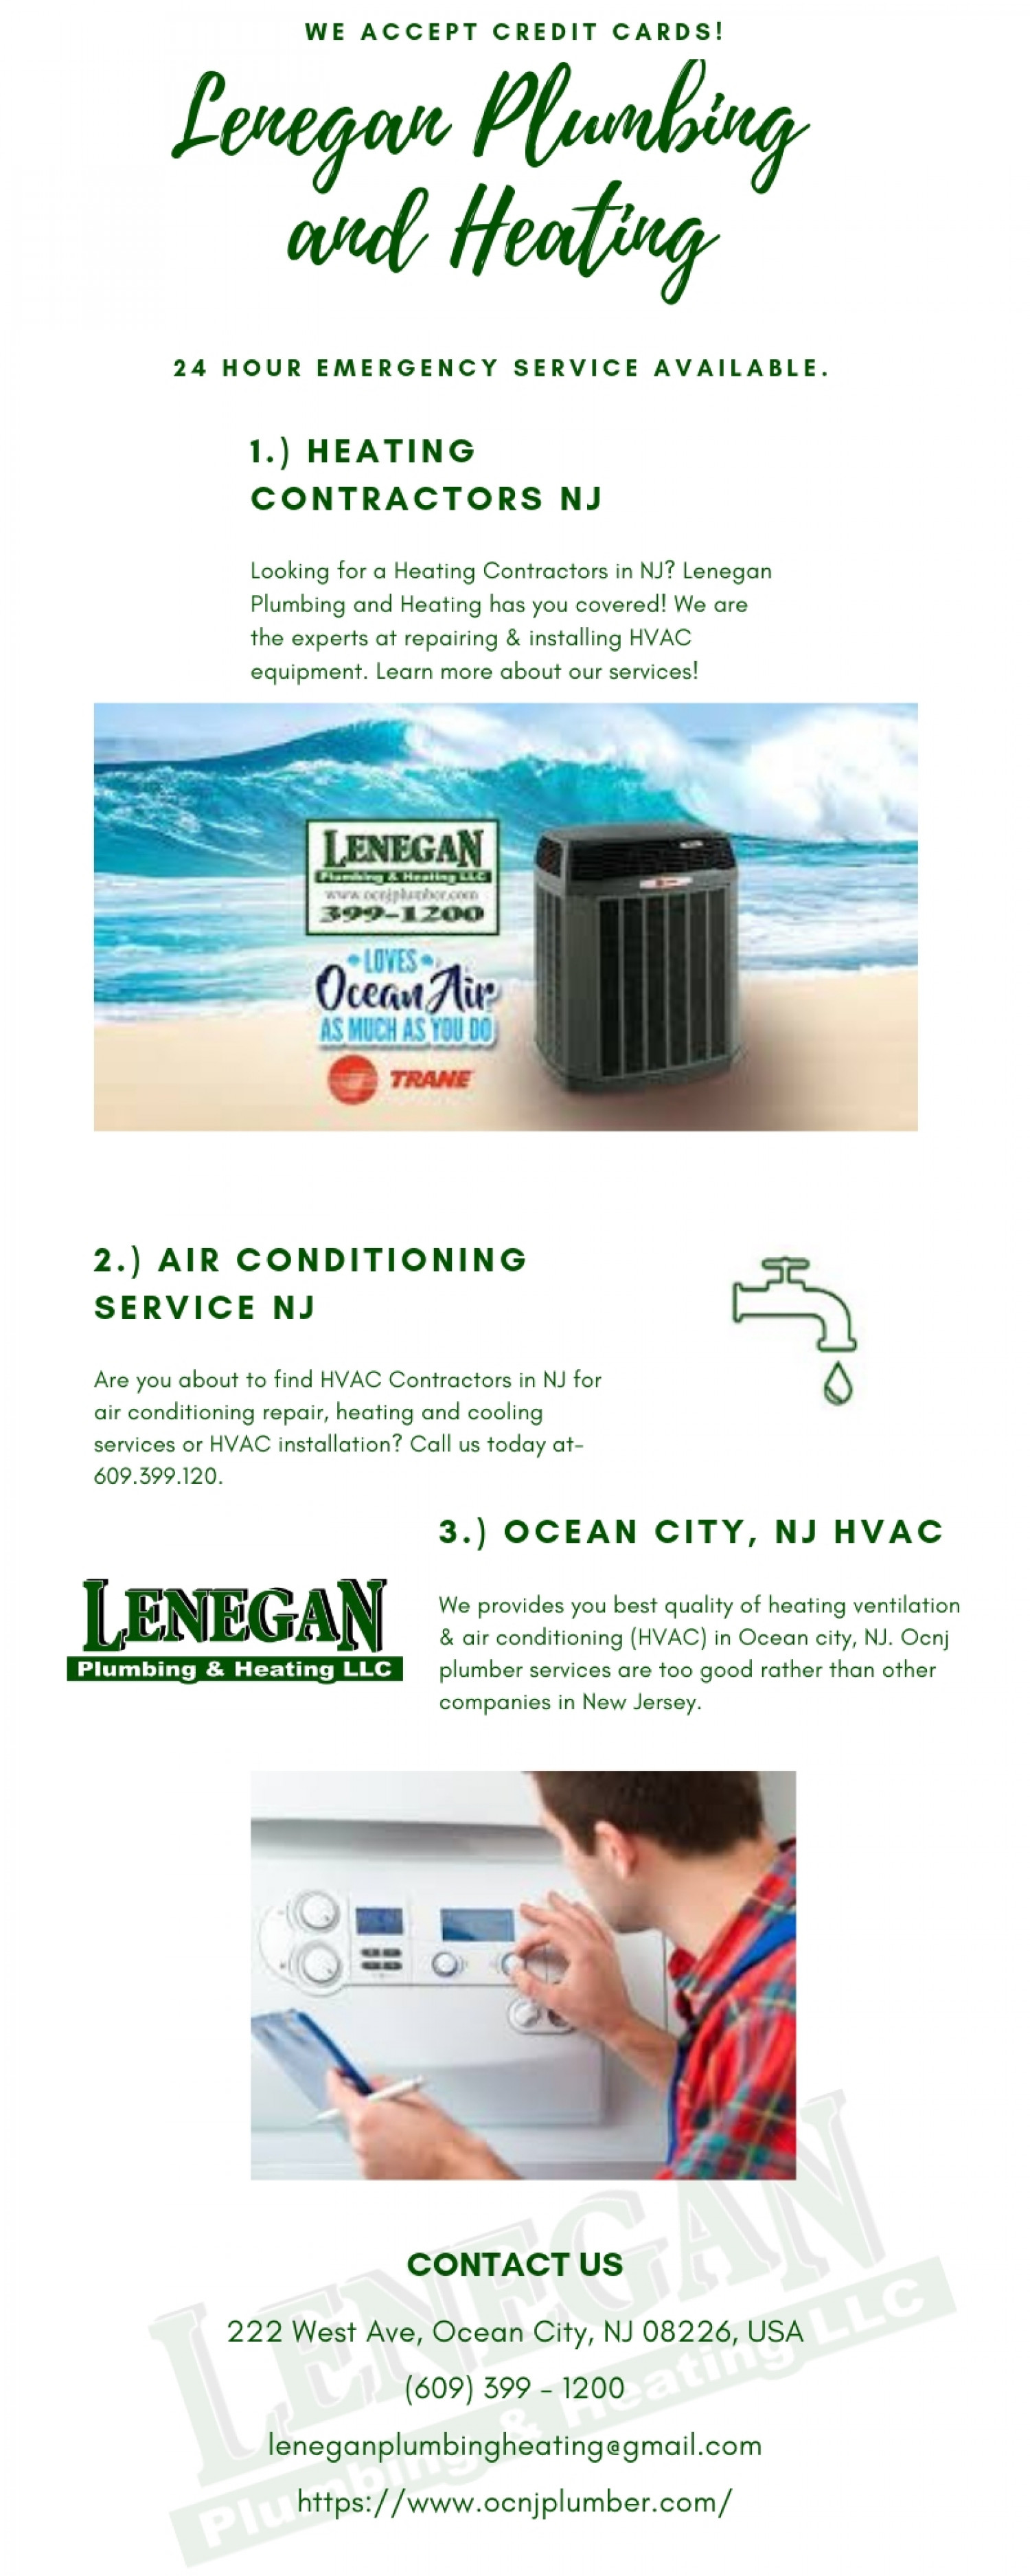 Ocean city, NJ HVAC - Lenegan Plumbing and Heating Infographic